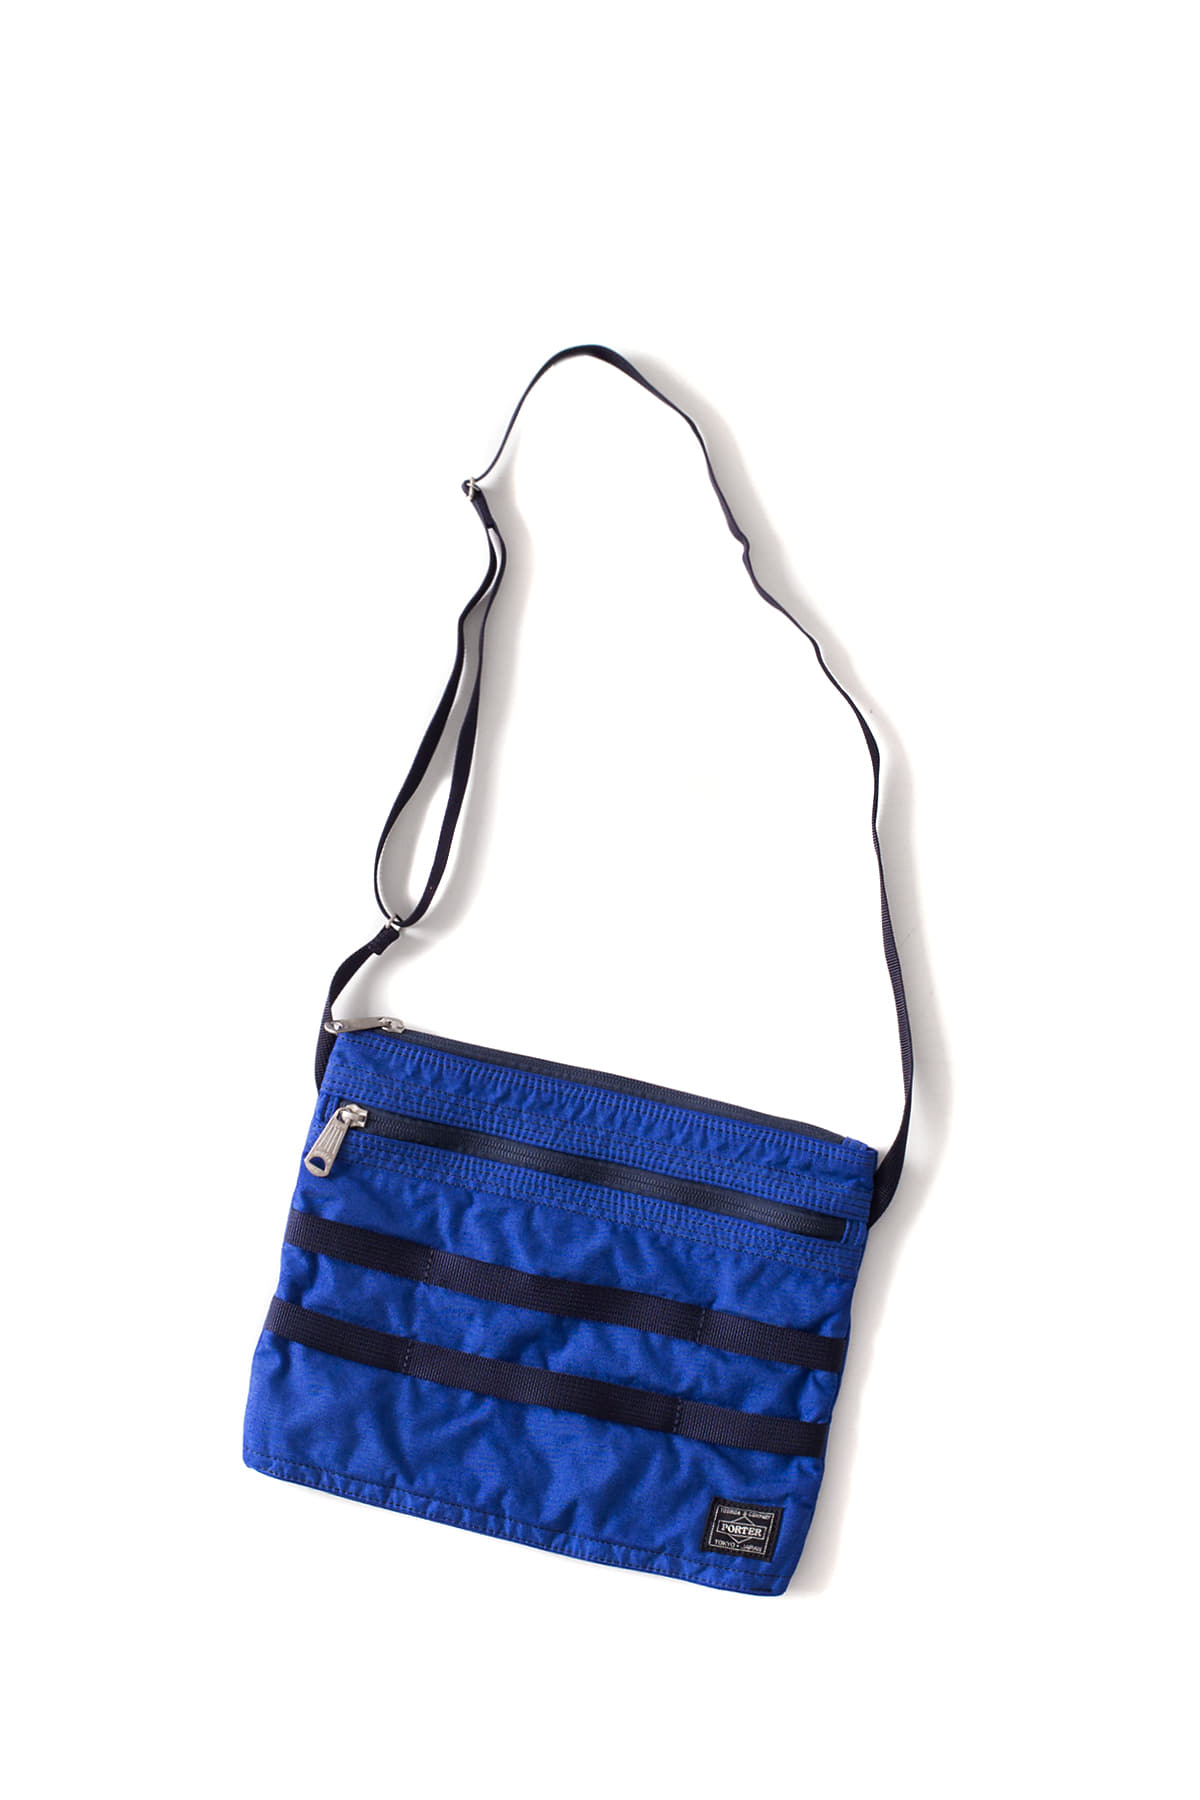 WHITE MOUNTAINEERING : WM x PORTER Garment Dyed Musette (Blue)